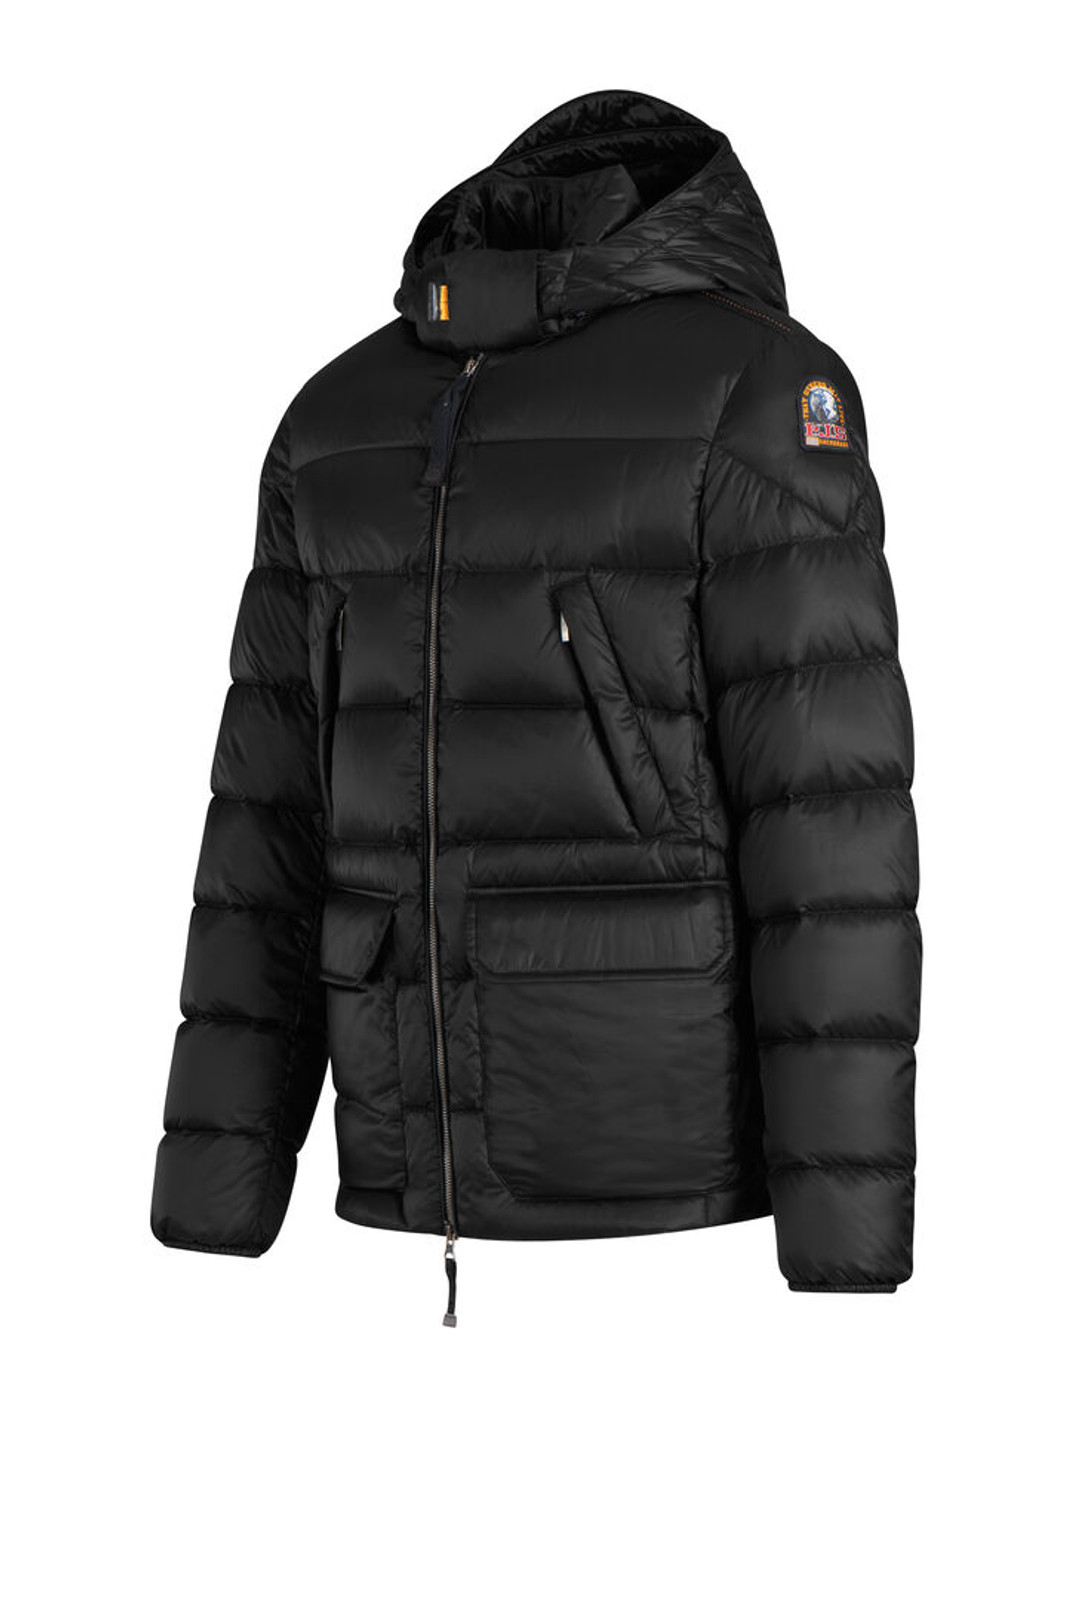 Parajumpers Greg Puffer Jacket, Men's, Pencil (PMJCKSX04-710) side